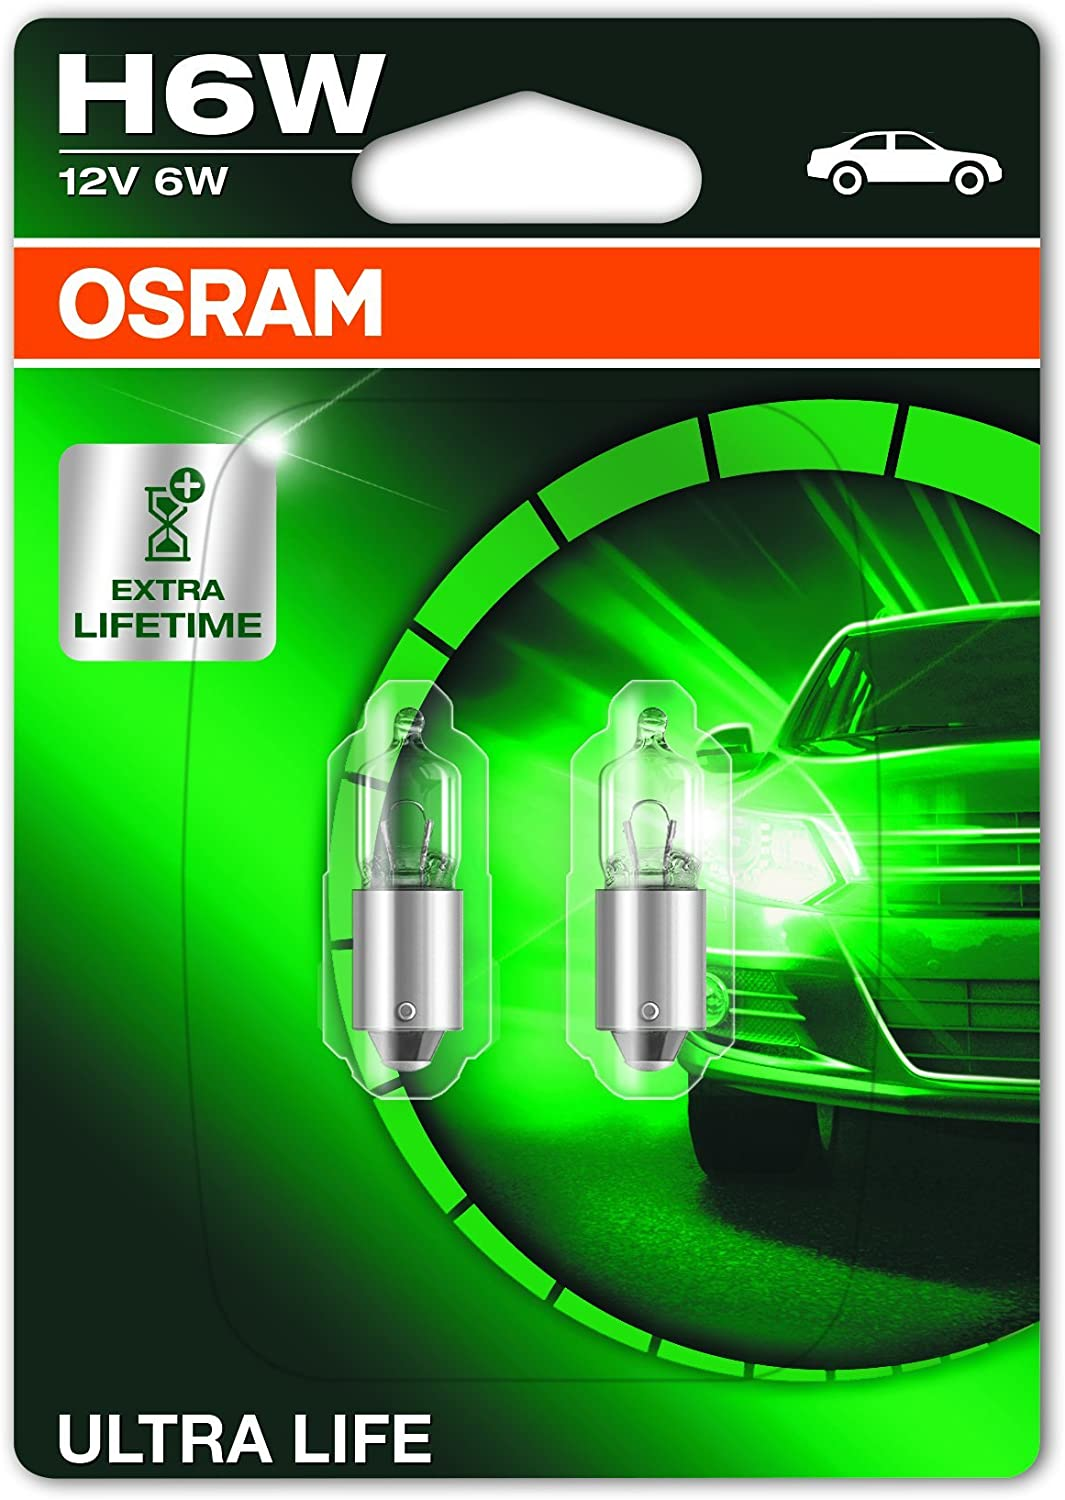 parking and position light 12 V passenger car double blister OSRAM 64132ULT-02B ULTRA LIFE H6W halogen 2 units